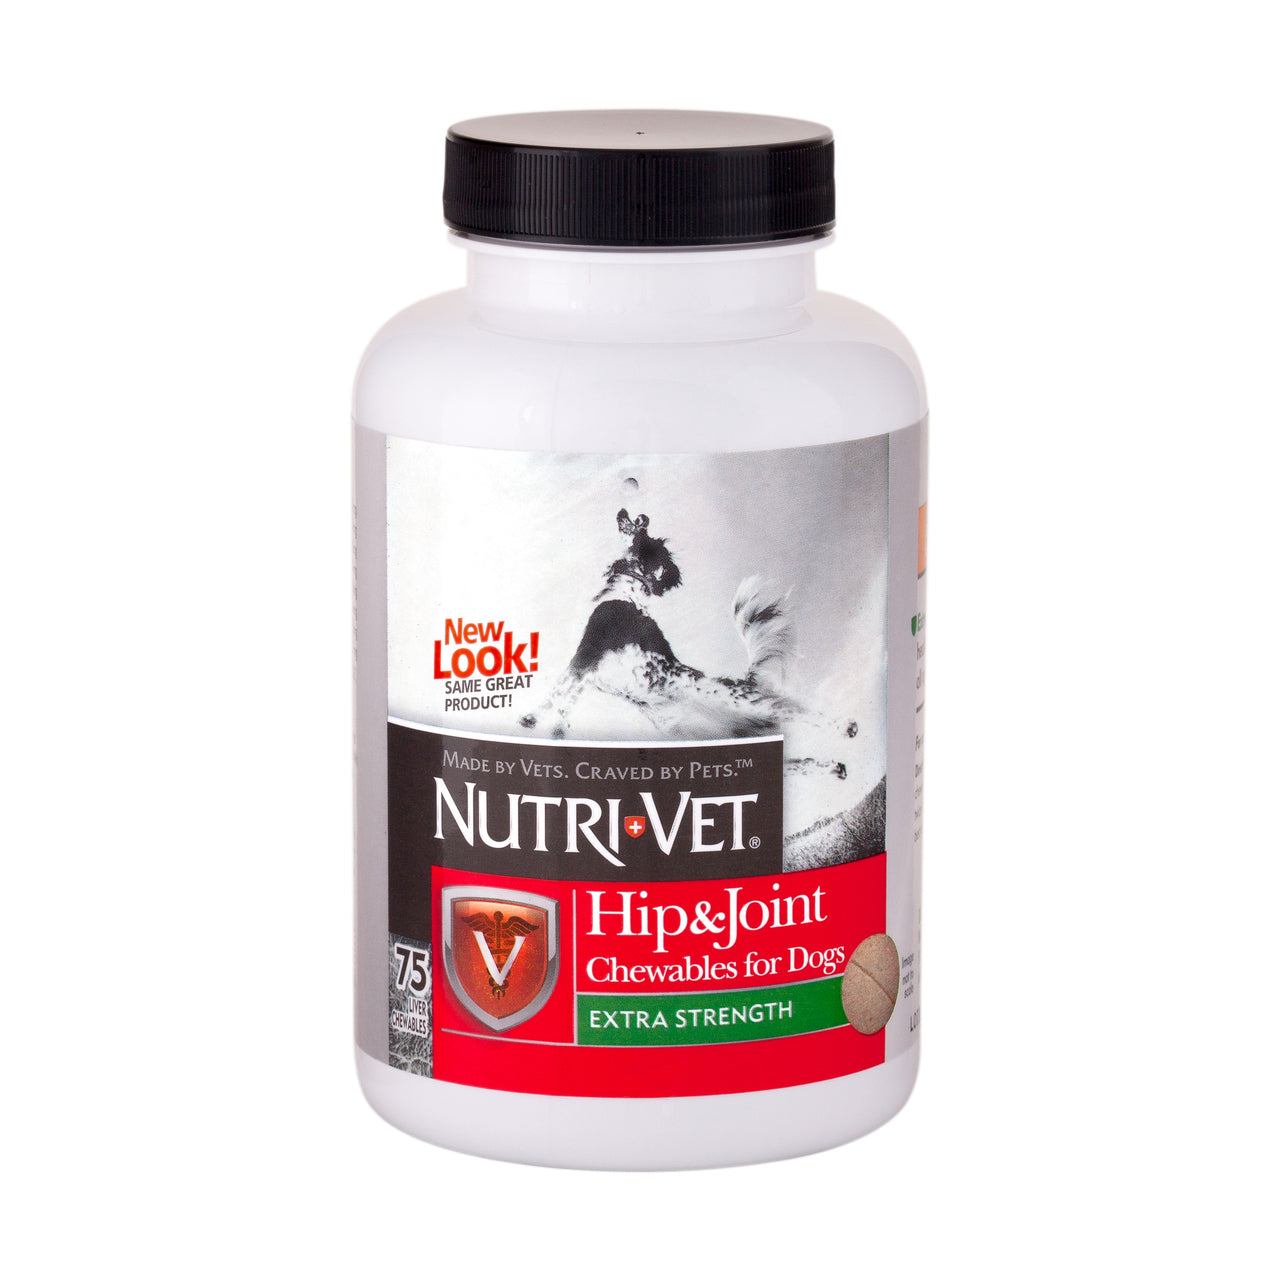 Nutri-Vet Hip & Joint Extra Strength, 75-ct